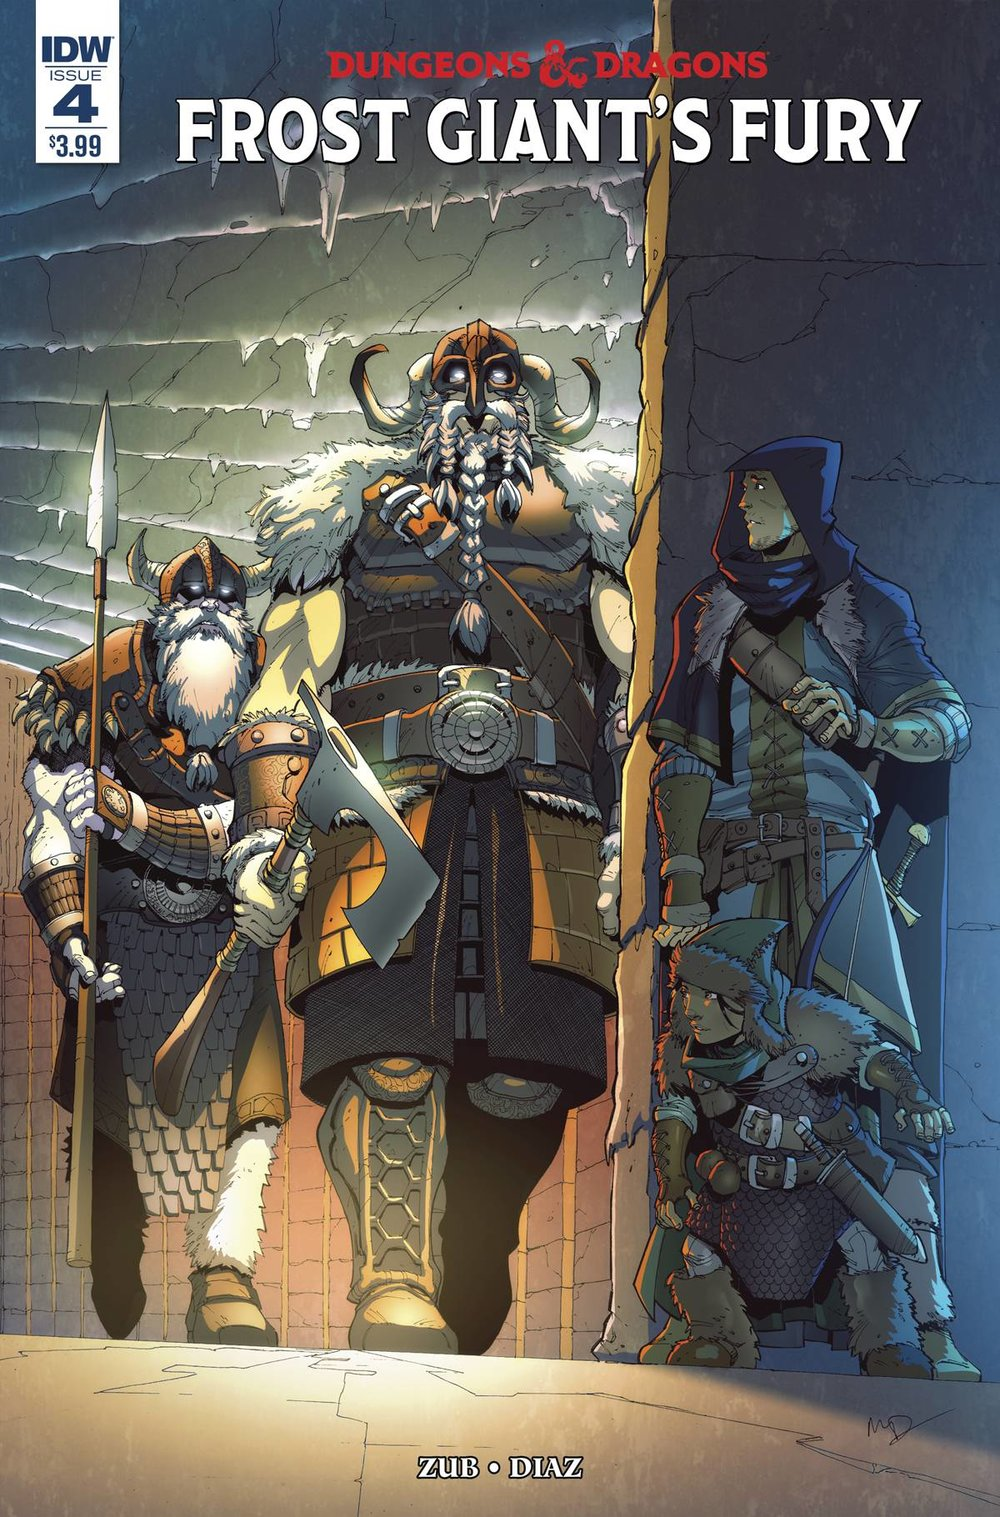 DUNGEONS & DRAGONS FROST GIANTS FURY 4.jpg